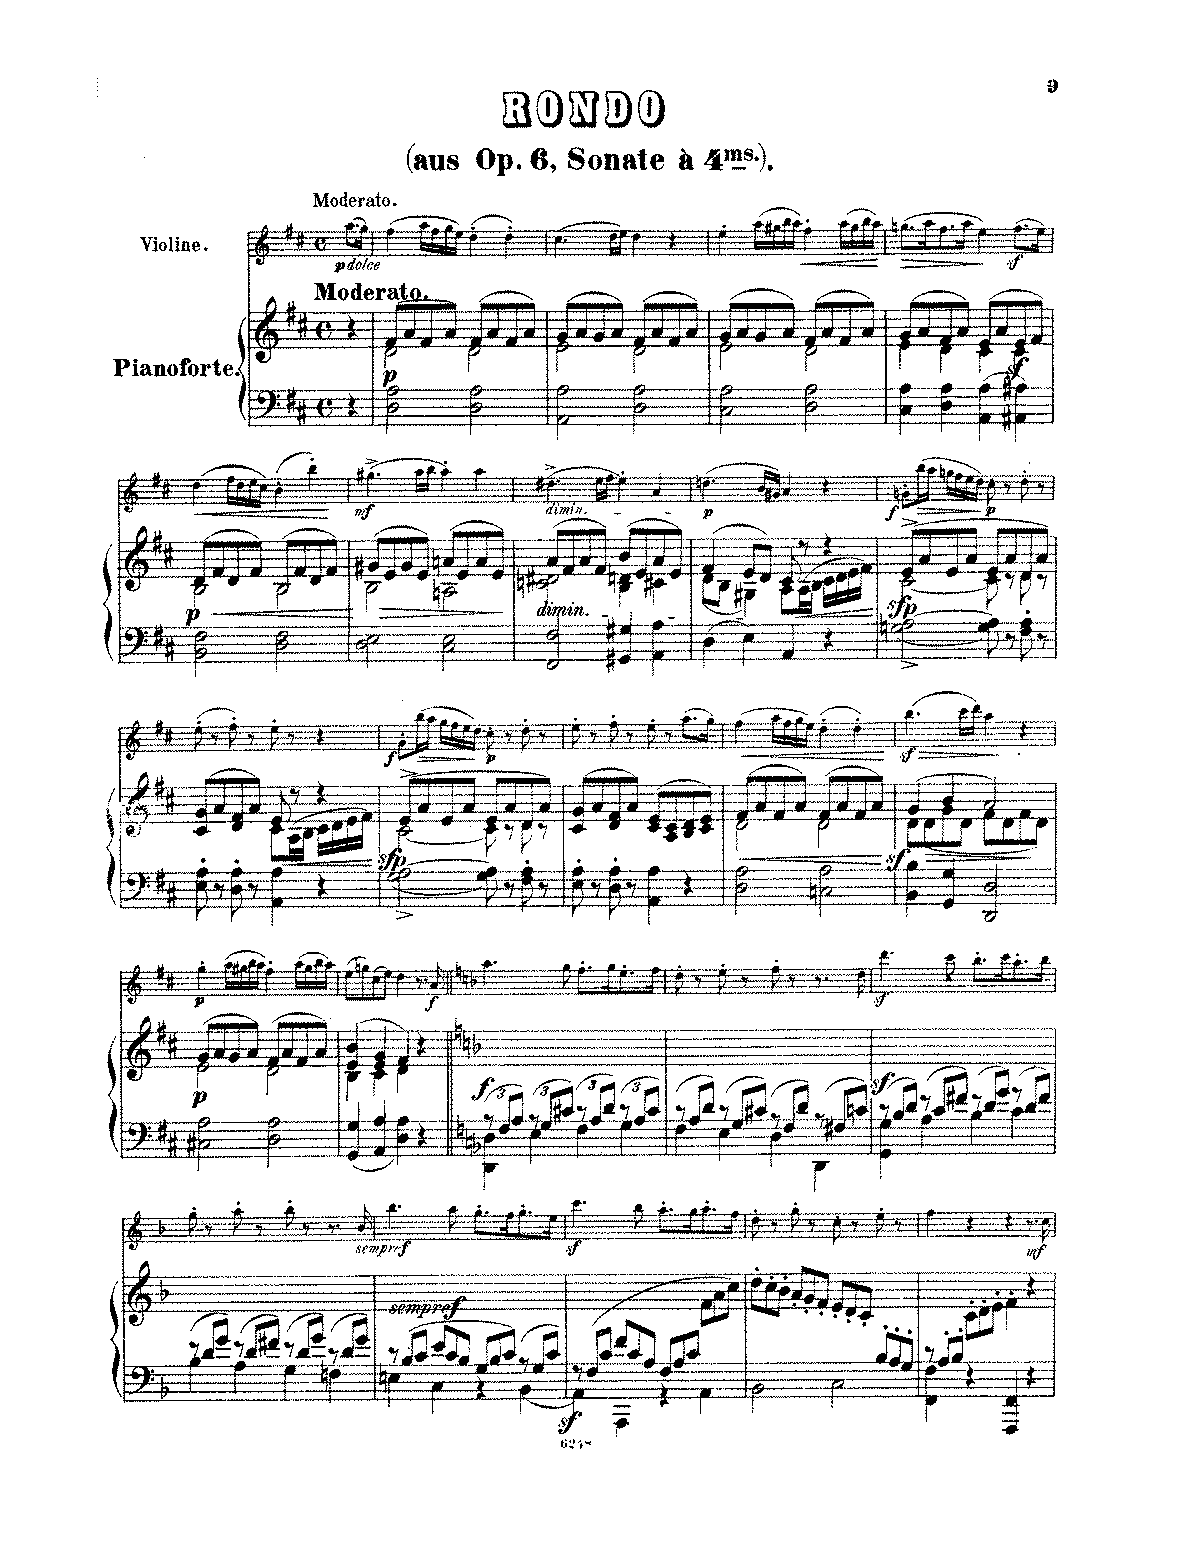 PMLP13885-Beeth Rondo Op 6 no 3 of Her Kl St vol. 3 Beethoven cmplt.pdf